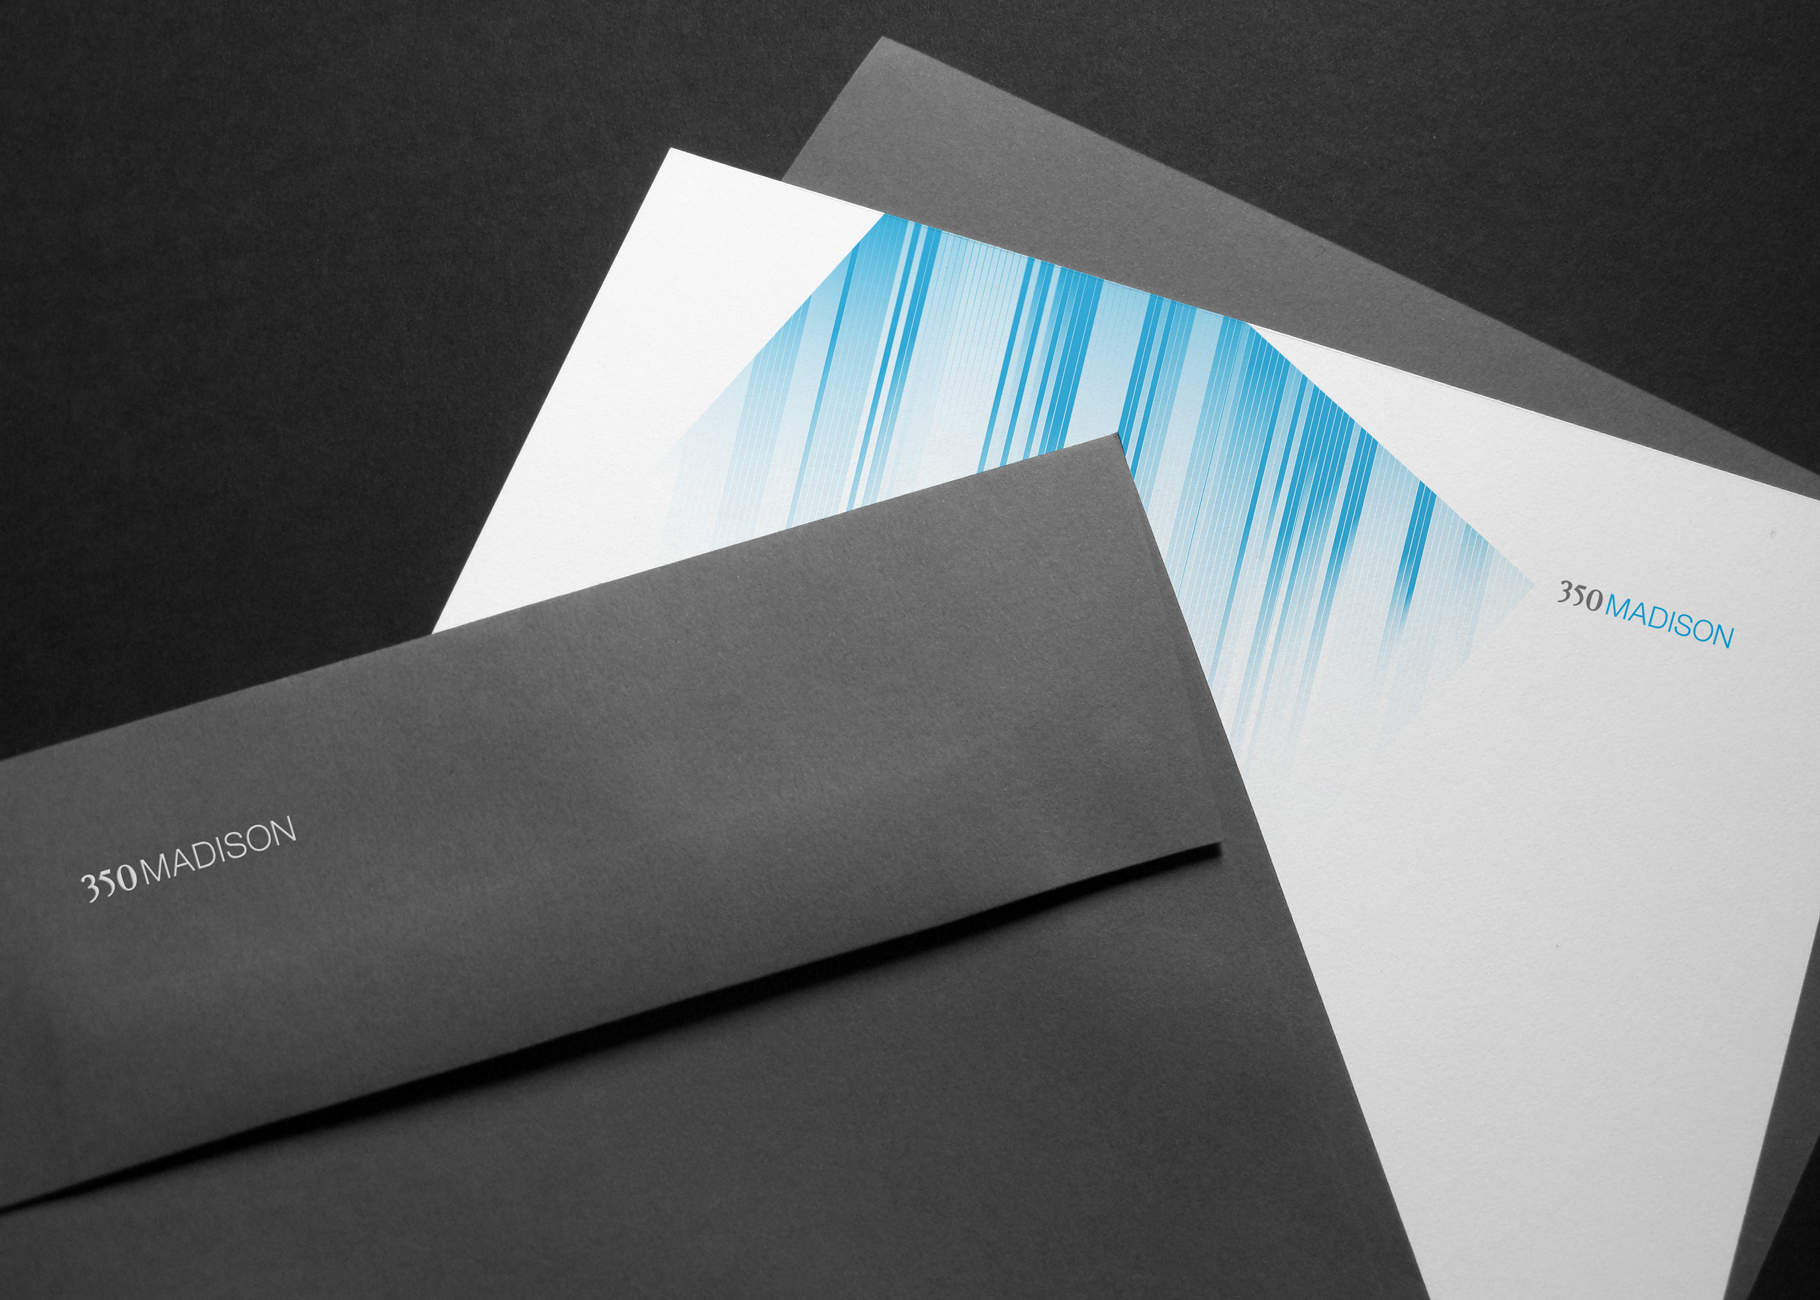 Identity and brand design, brand strategy and complete brand system copywriting, collateral and packaging design